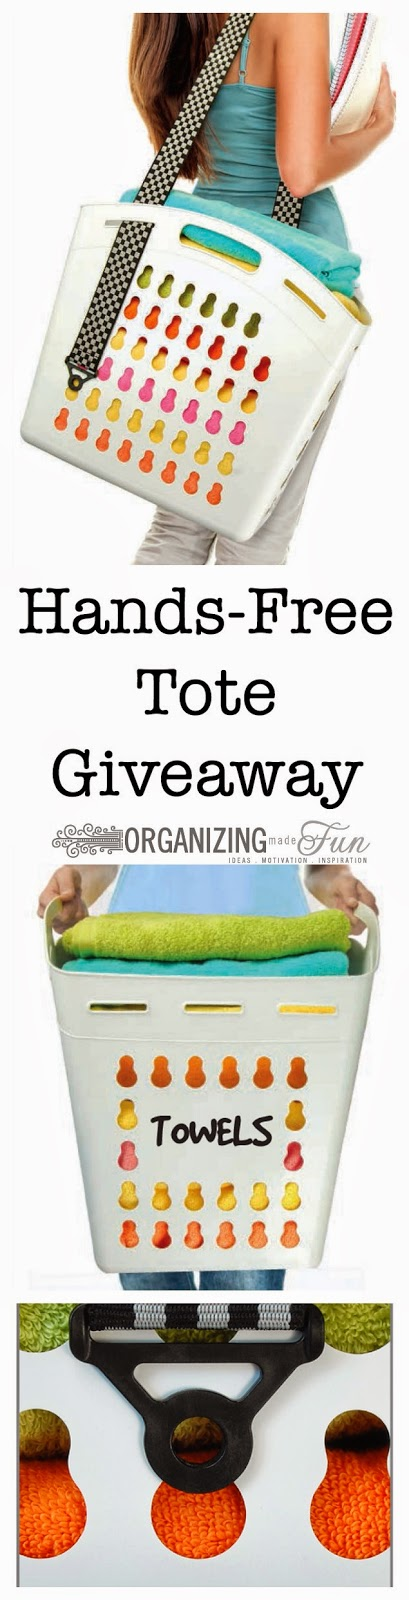 Hands Free Tote Giveaway :: OrganizingMadeFun.com